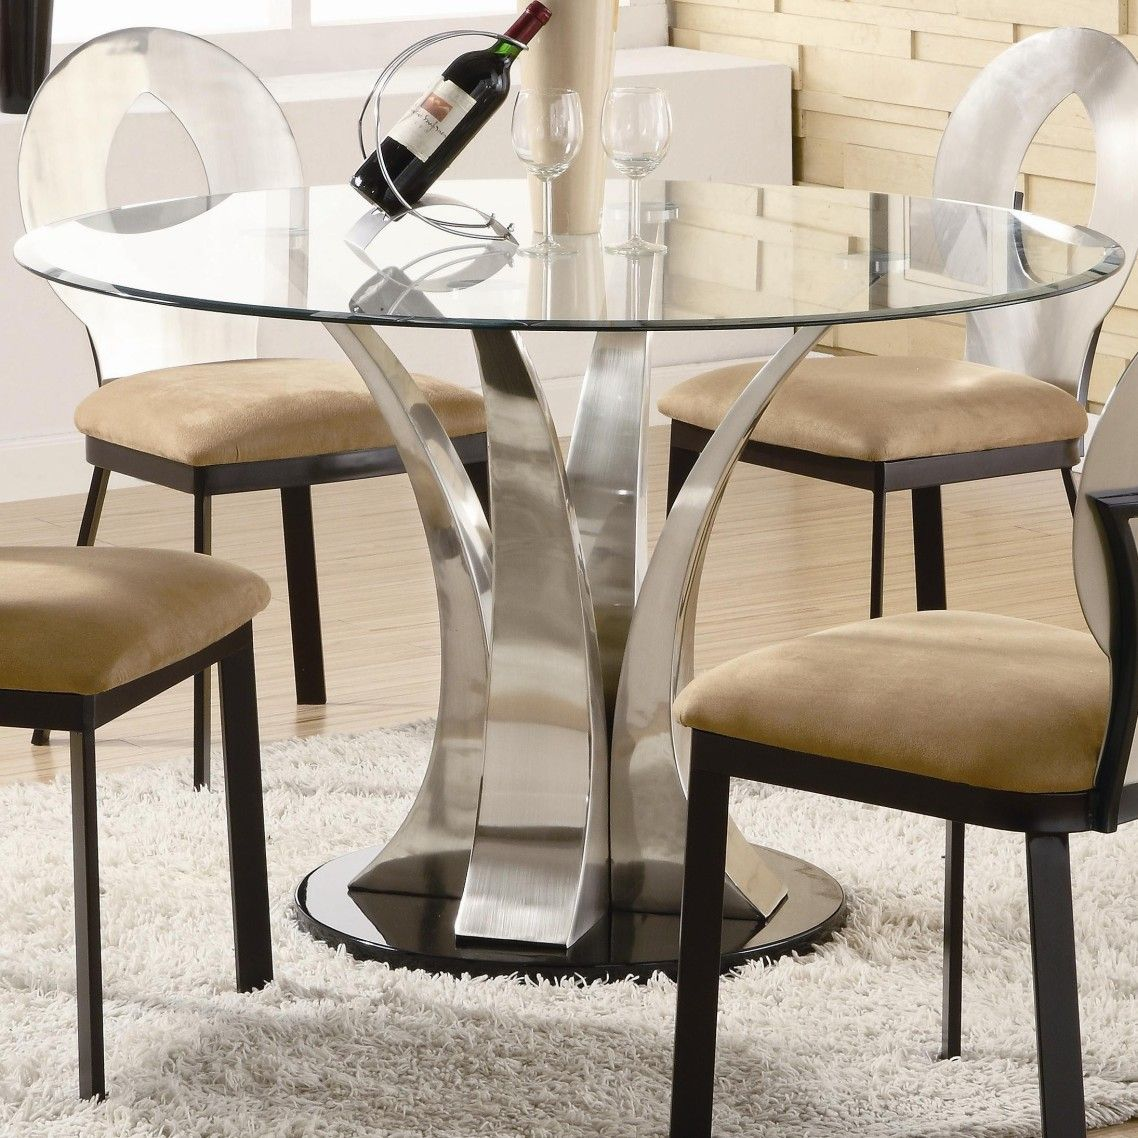 Awesome Modern Glass Top Dining Table With Chrome Metal ...